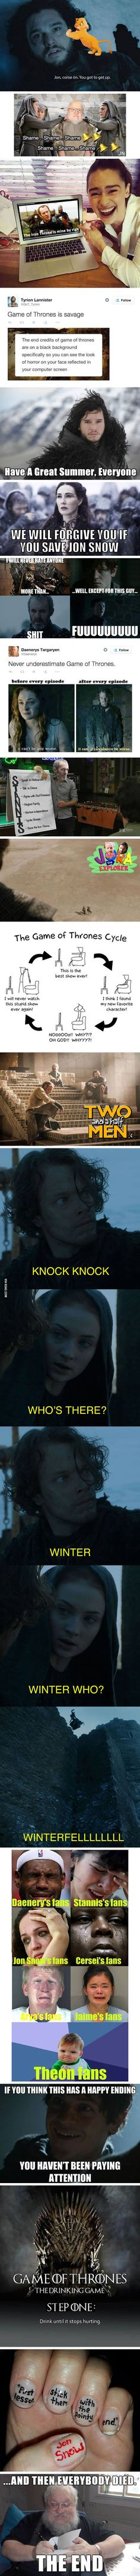 These Are The Best Internet Reactions To Game Of Thrones Season 5 Finale. #memes // www.drolementvotre.com